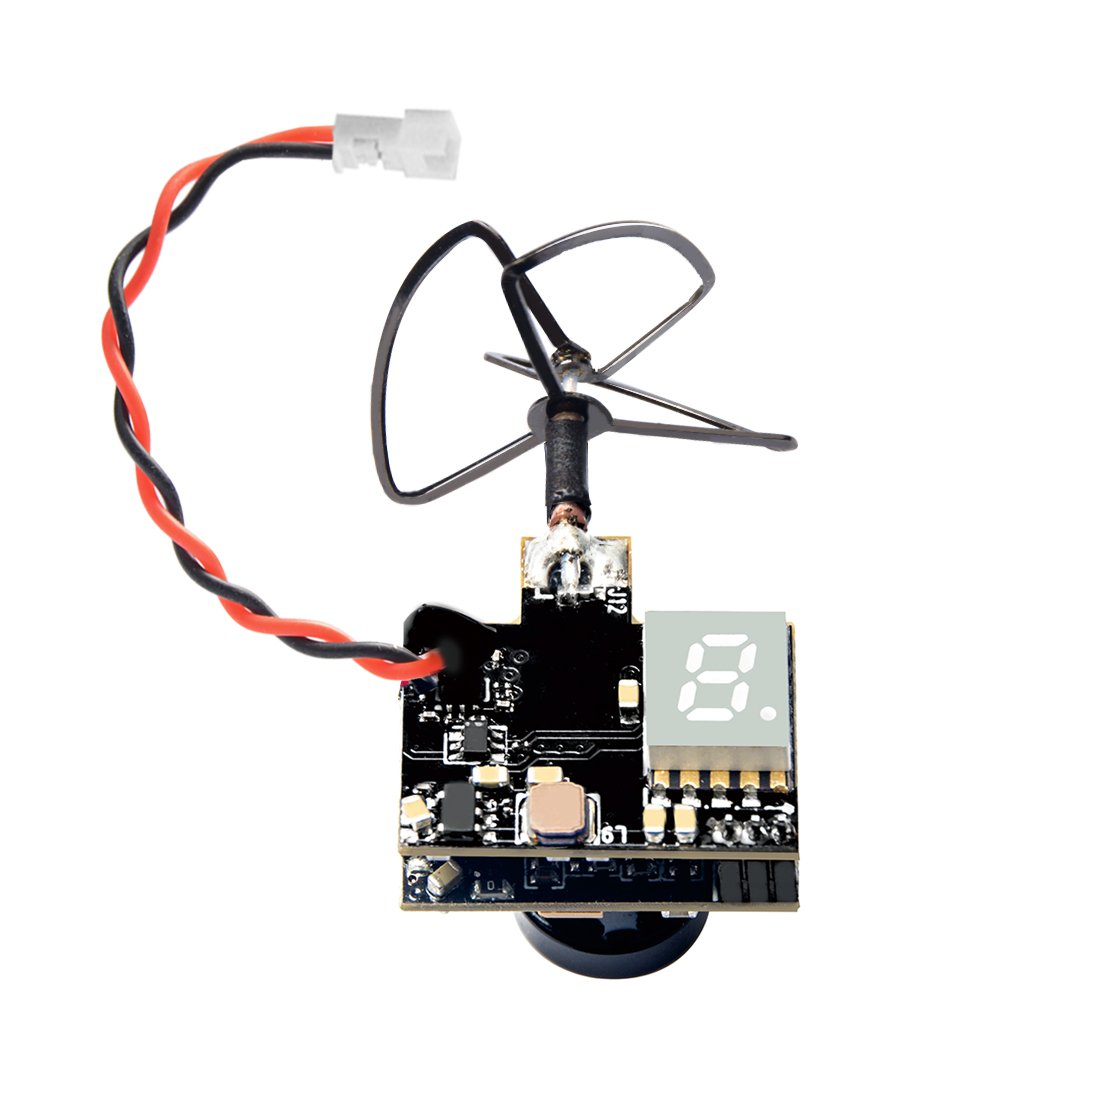 Wolfwhoop WT03 Micro FPV AIO 600TVL Camera 5.8G 25mW/50mW/200mW Adjustable Transmitter with Cloverleaf Antenna for Mini Aircraft